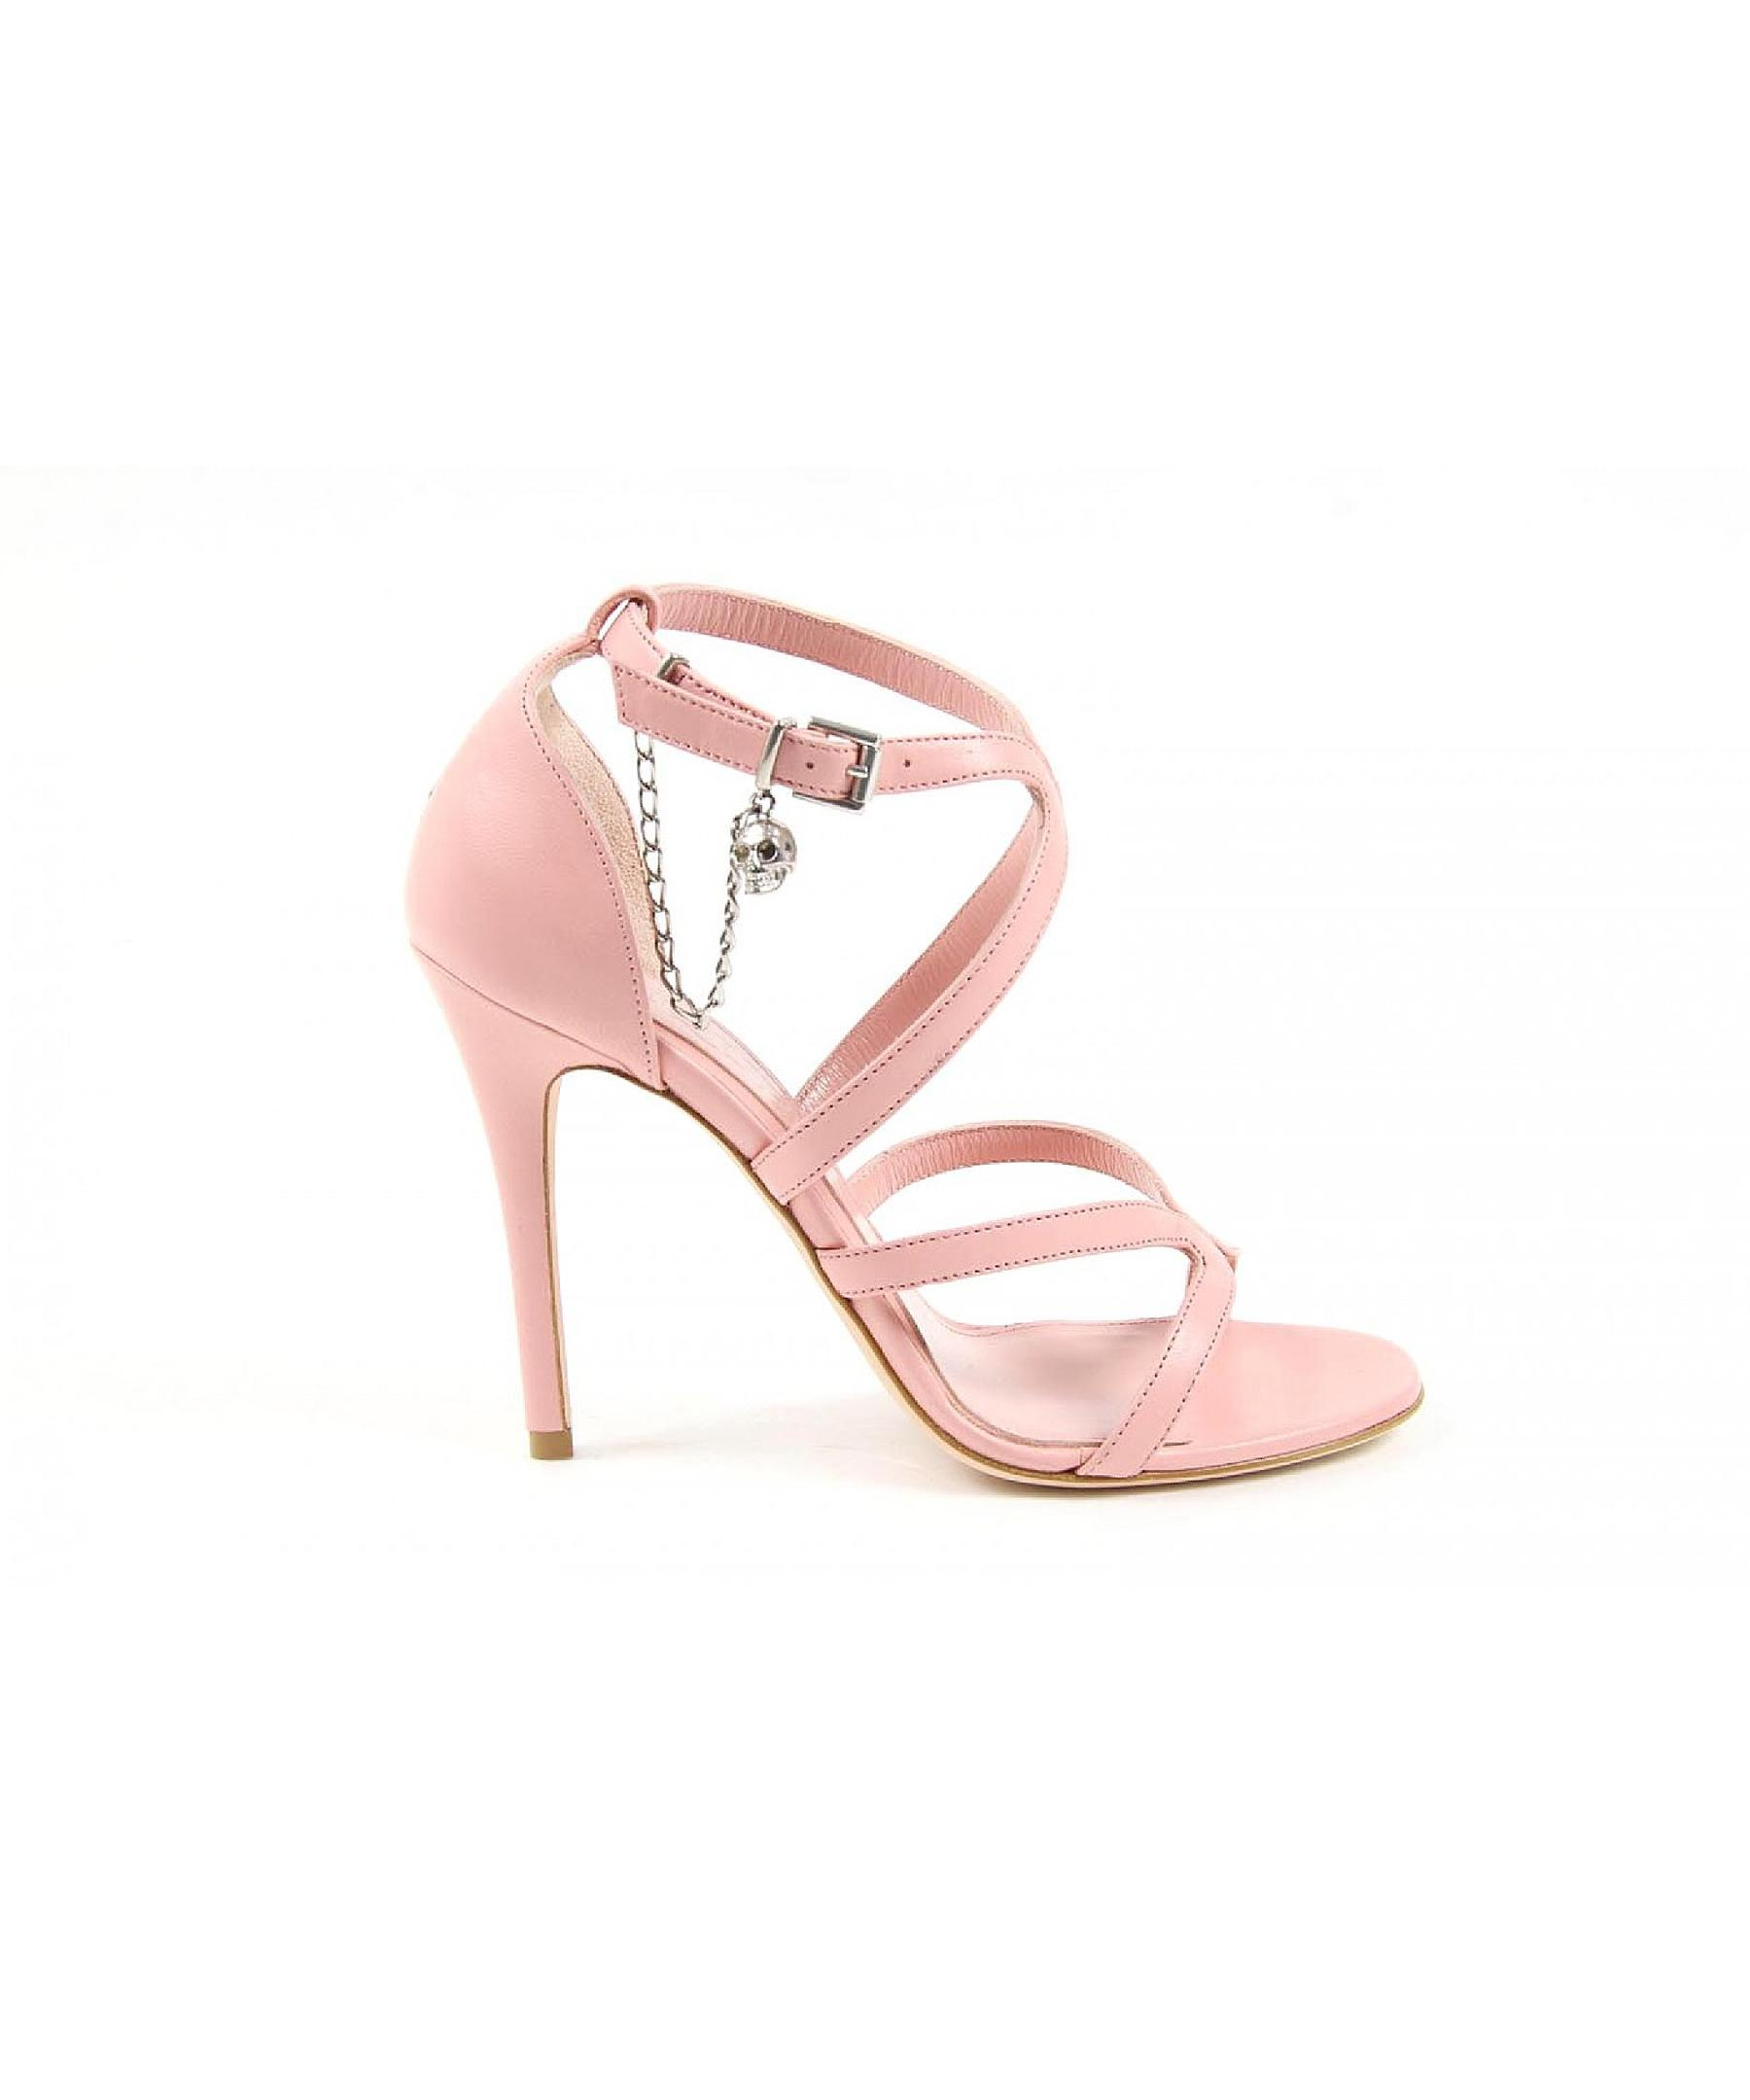 8475b5b6fc90 Lyst - Alexander Mcqueen Ladies Sandals in Pink